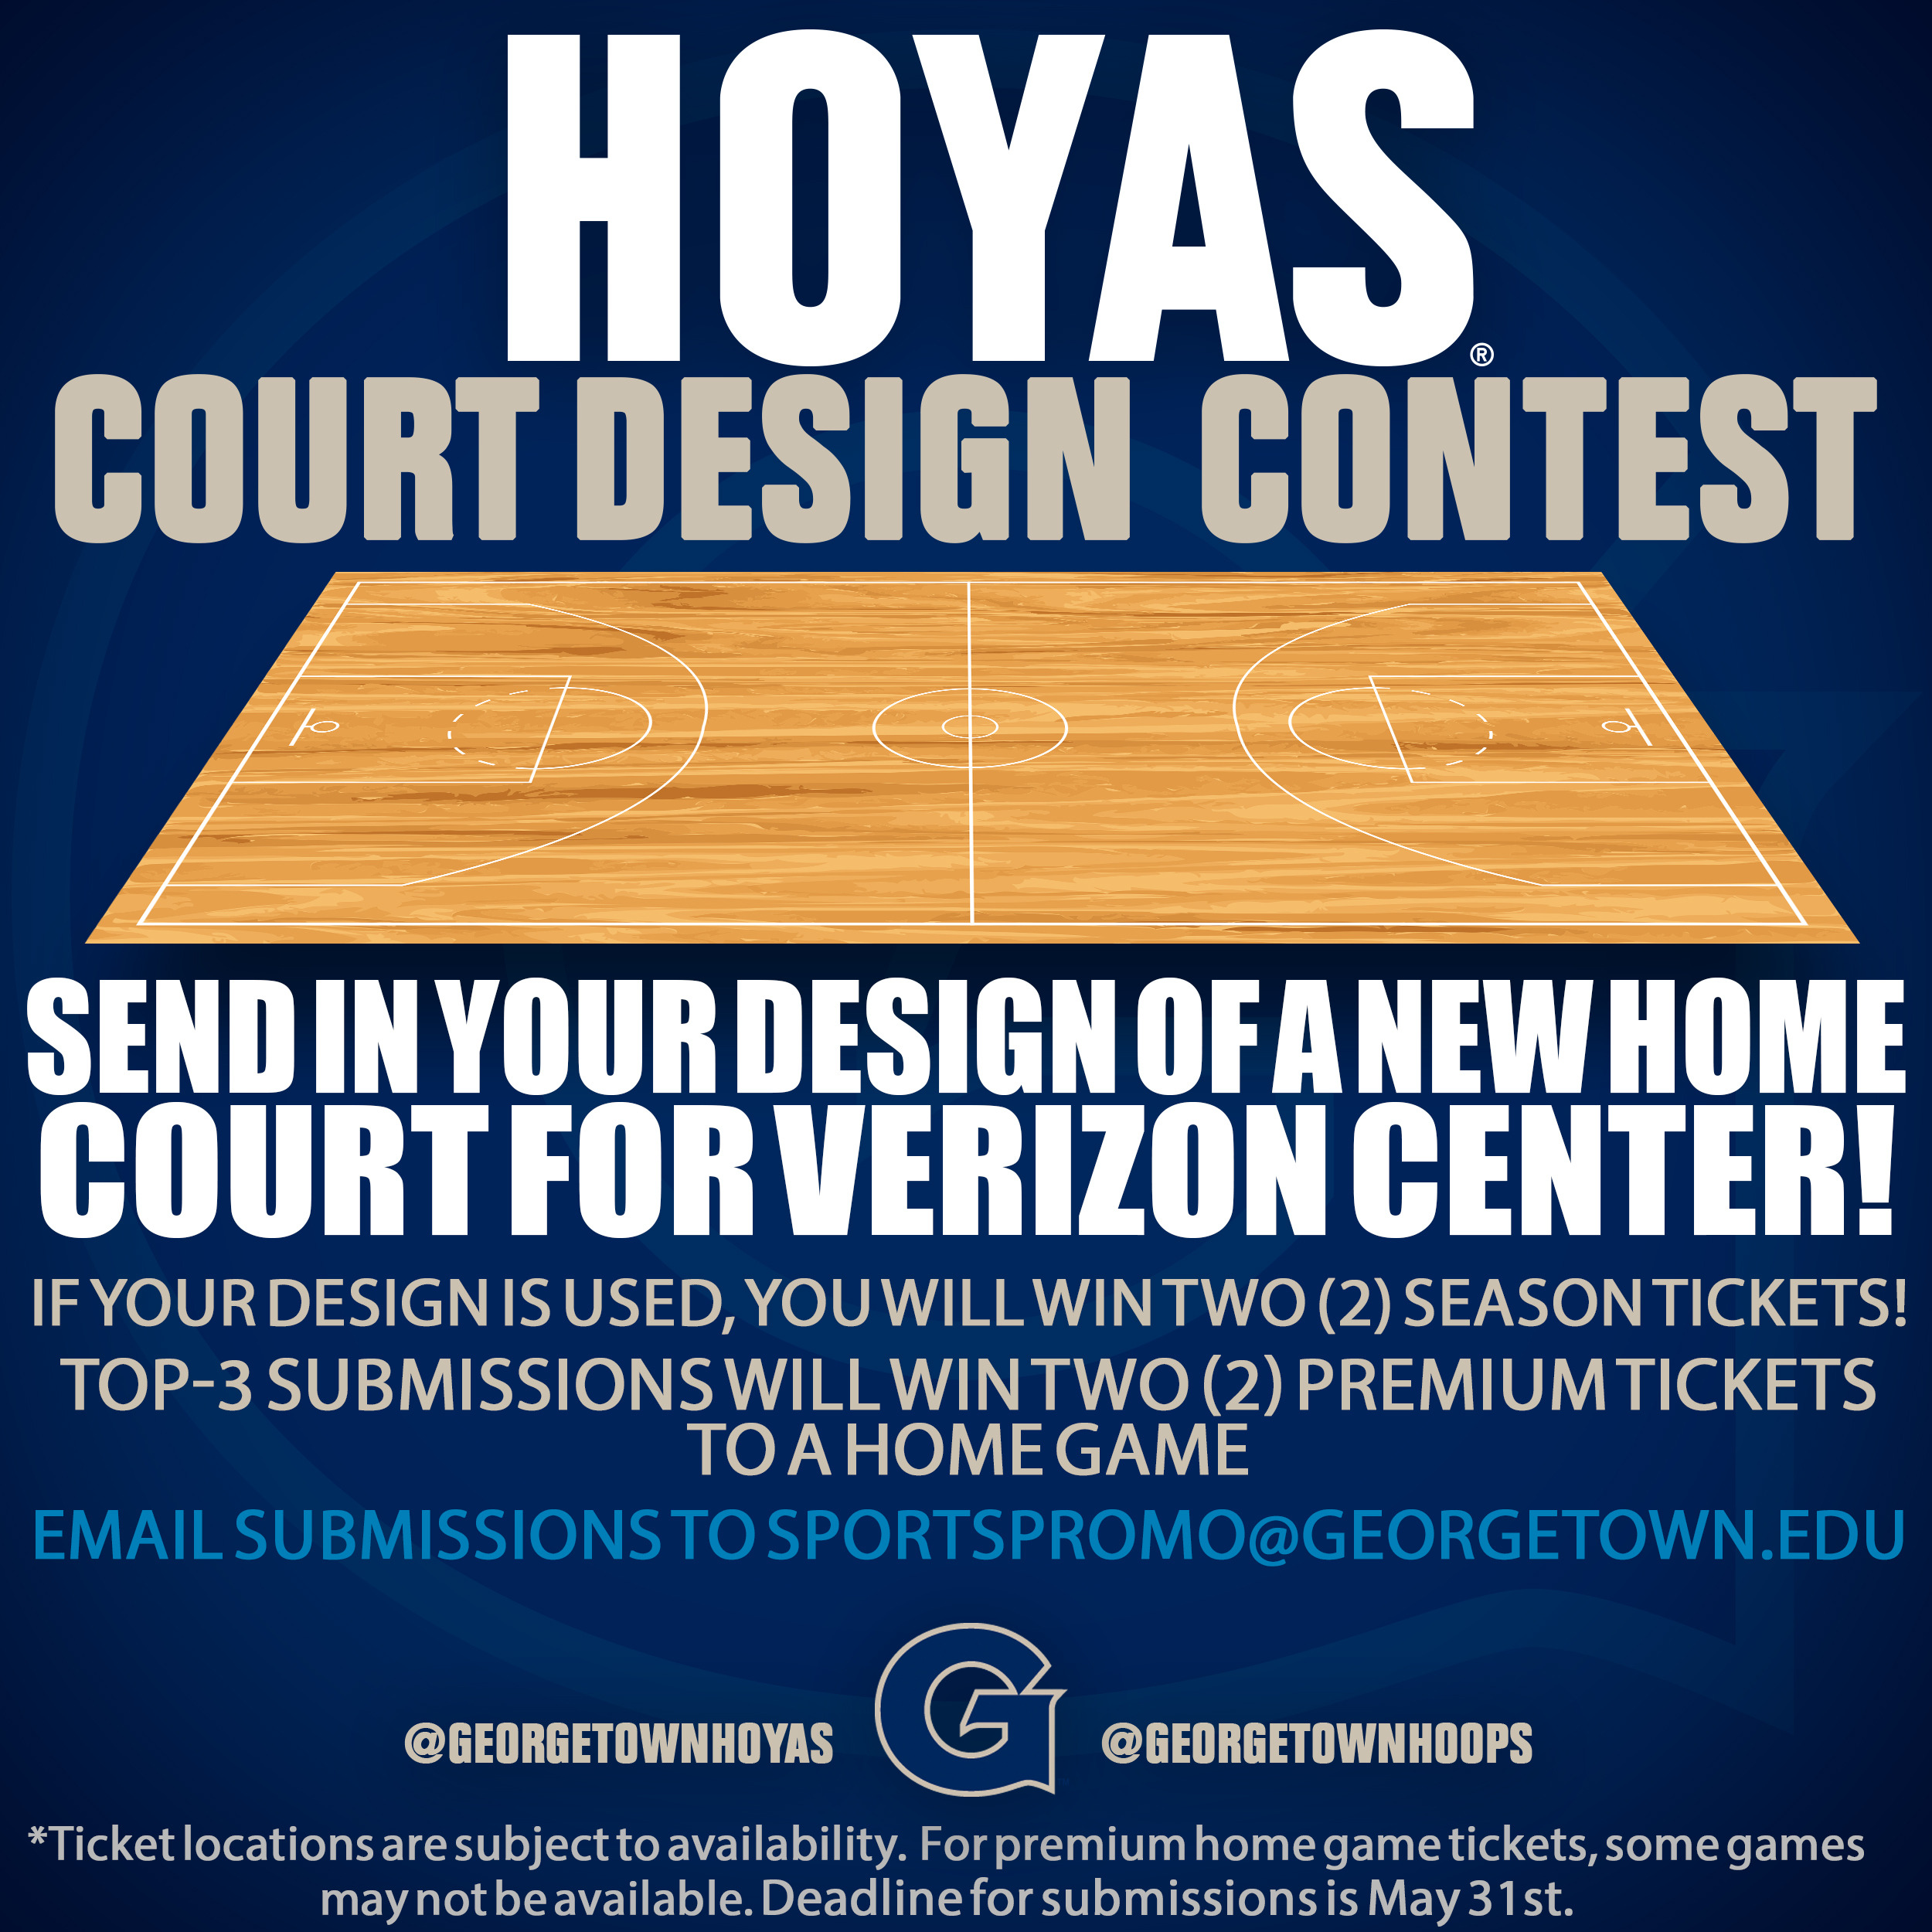 Georgetown Athletics is holding a design contest for a new paint job for its home court at Verizon Center. Fans can submit their own designs for a change to win some great prizes from the Hoyas.